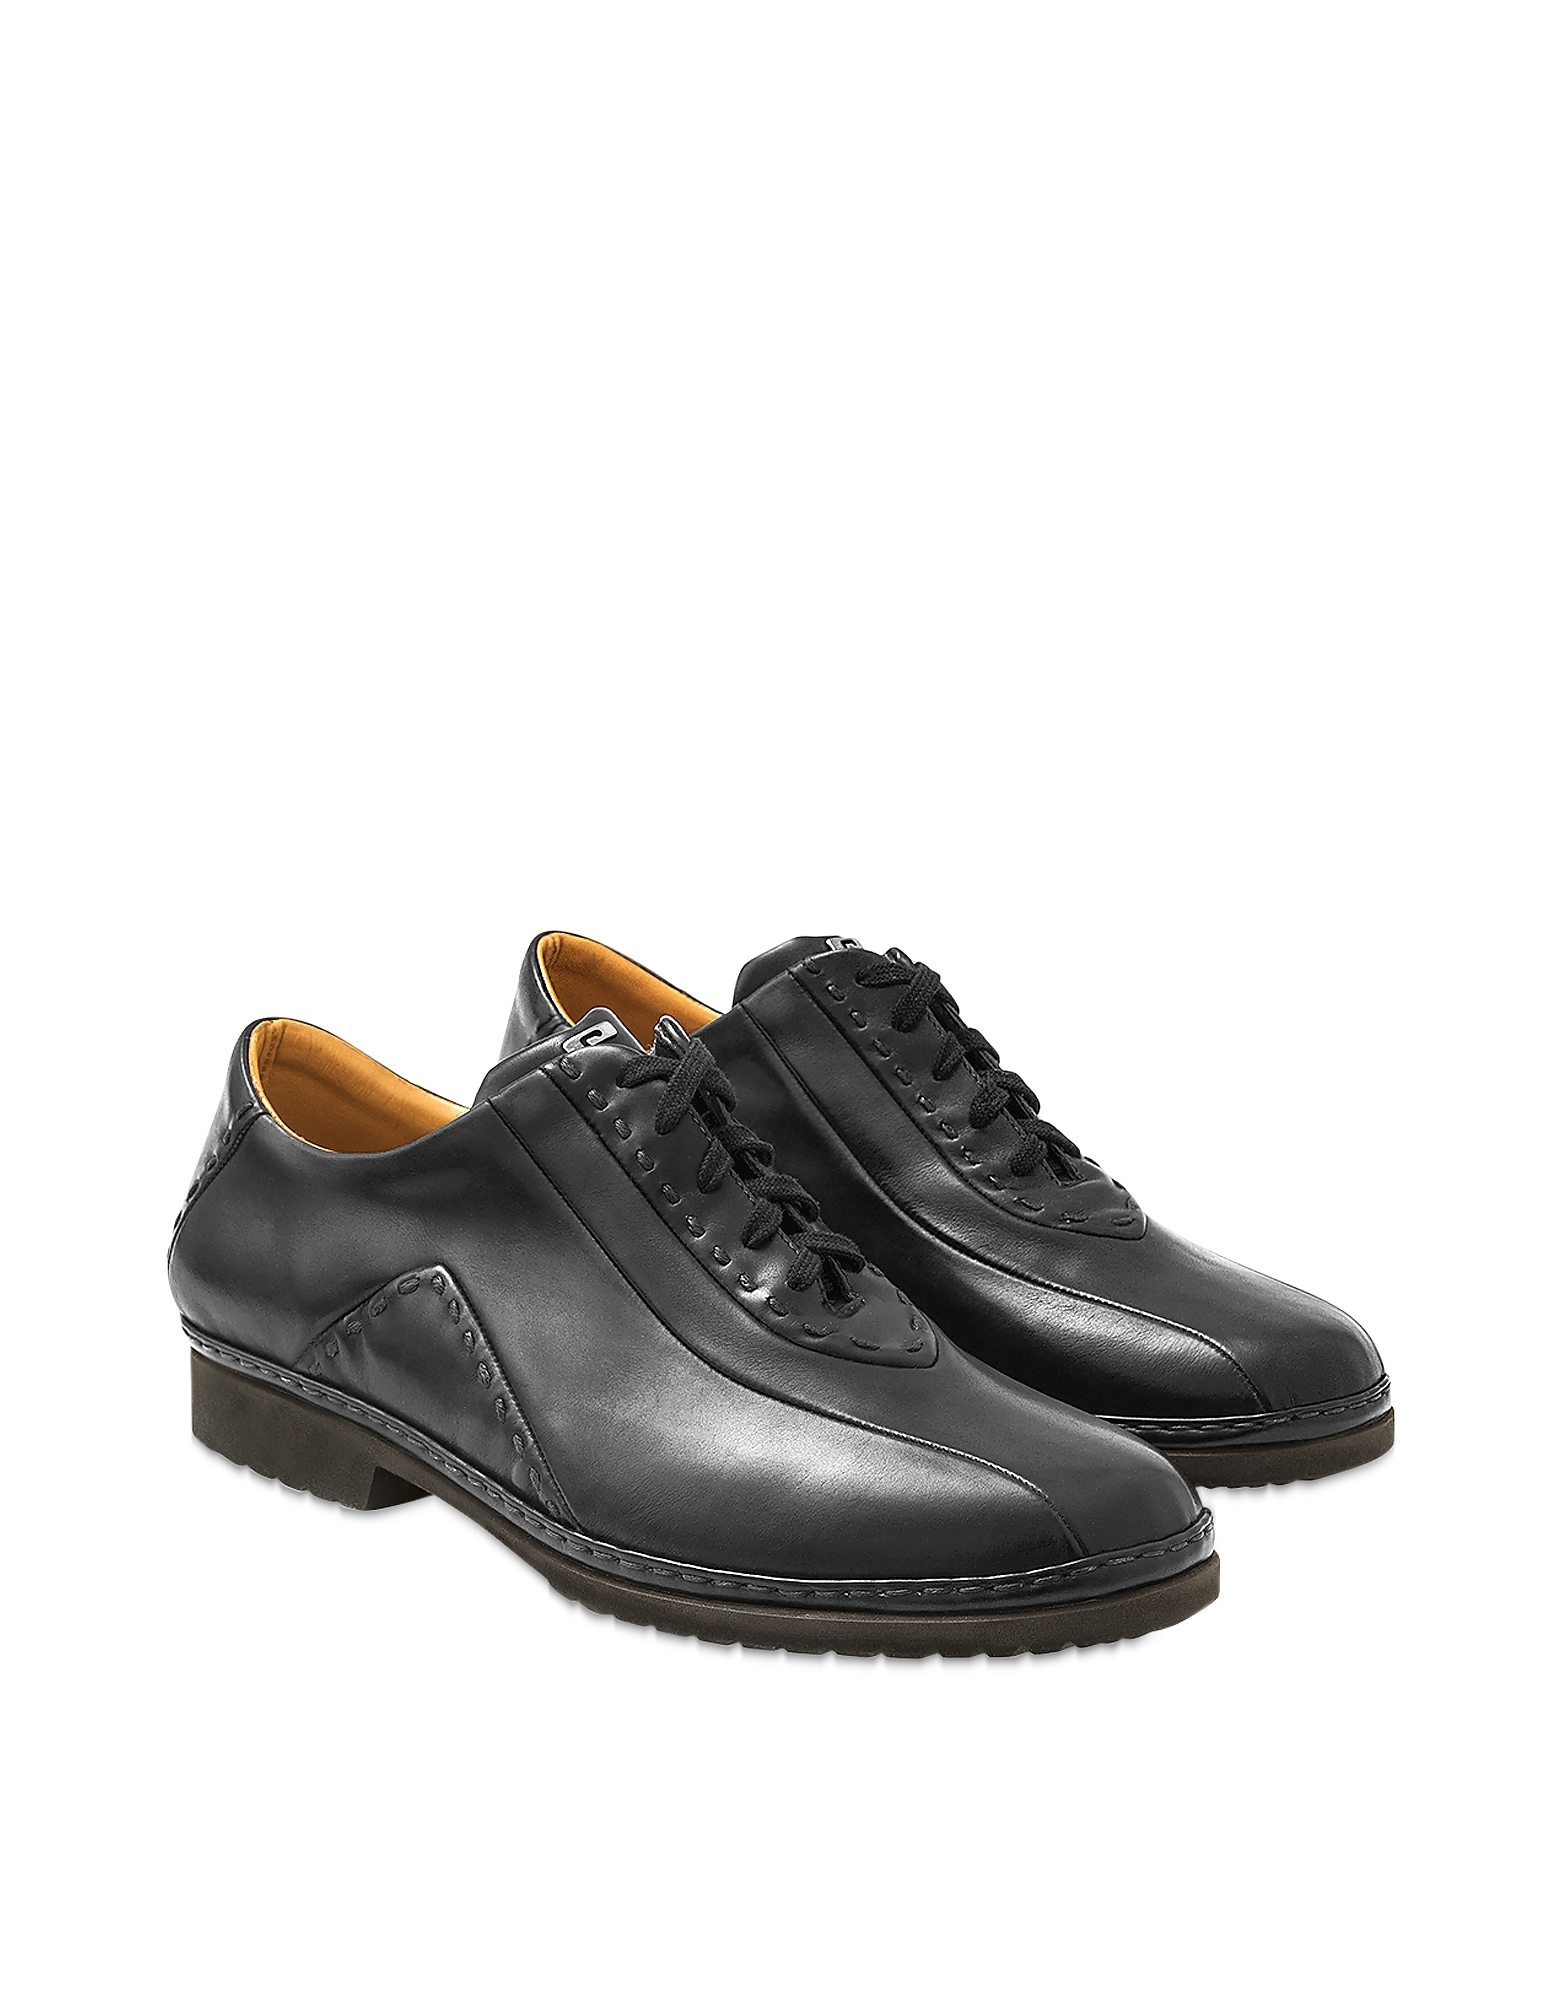 Pakerson Designer Shoes, Black Italian Hand Made Calf Leather Lace-up Shoes